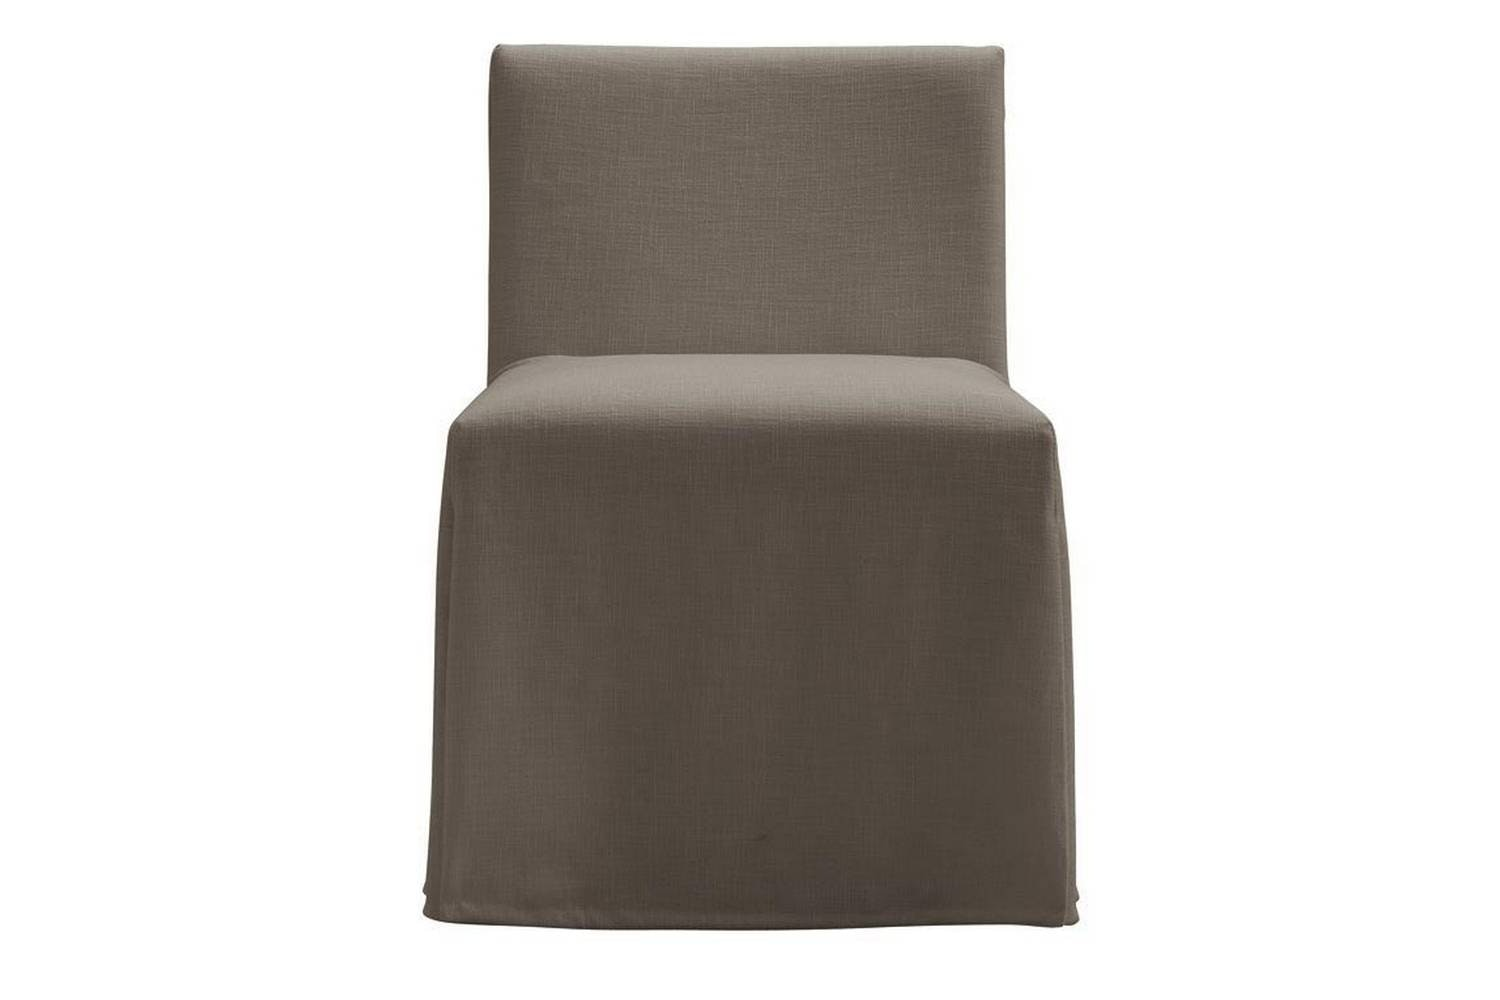 Velvet Due Chair by CR&S Poliform for Poliform